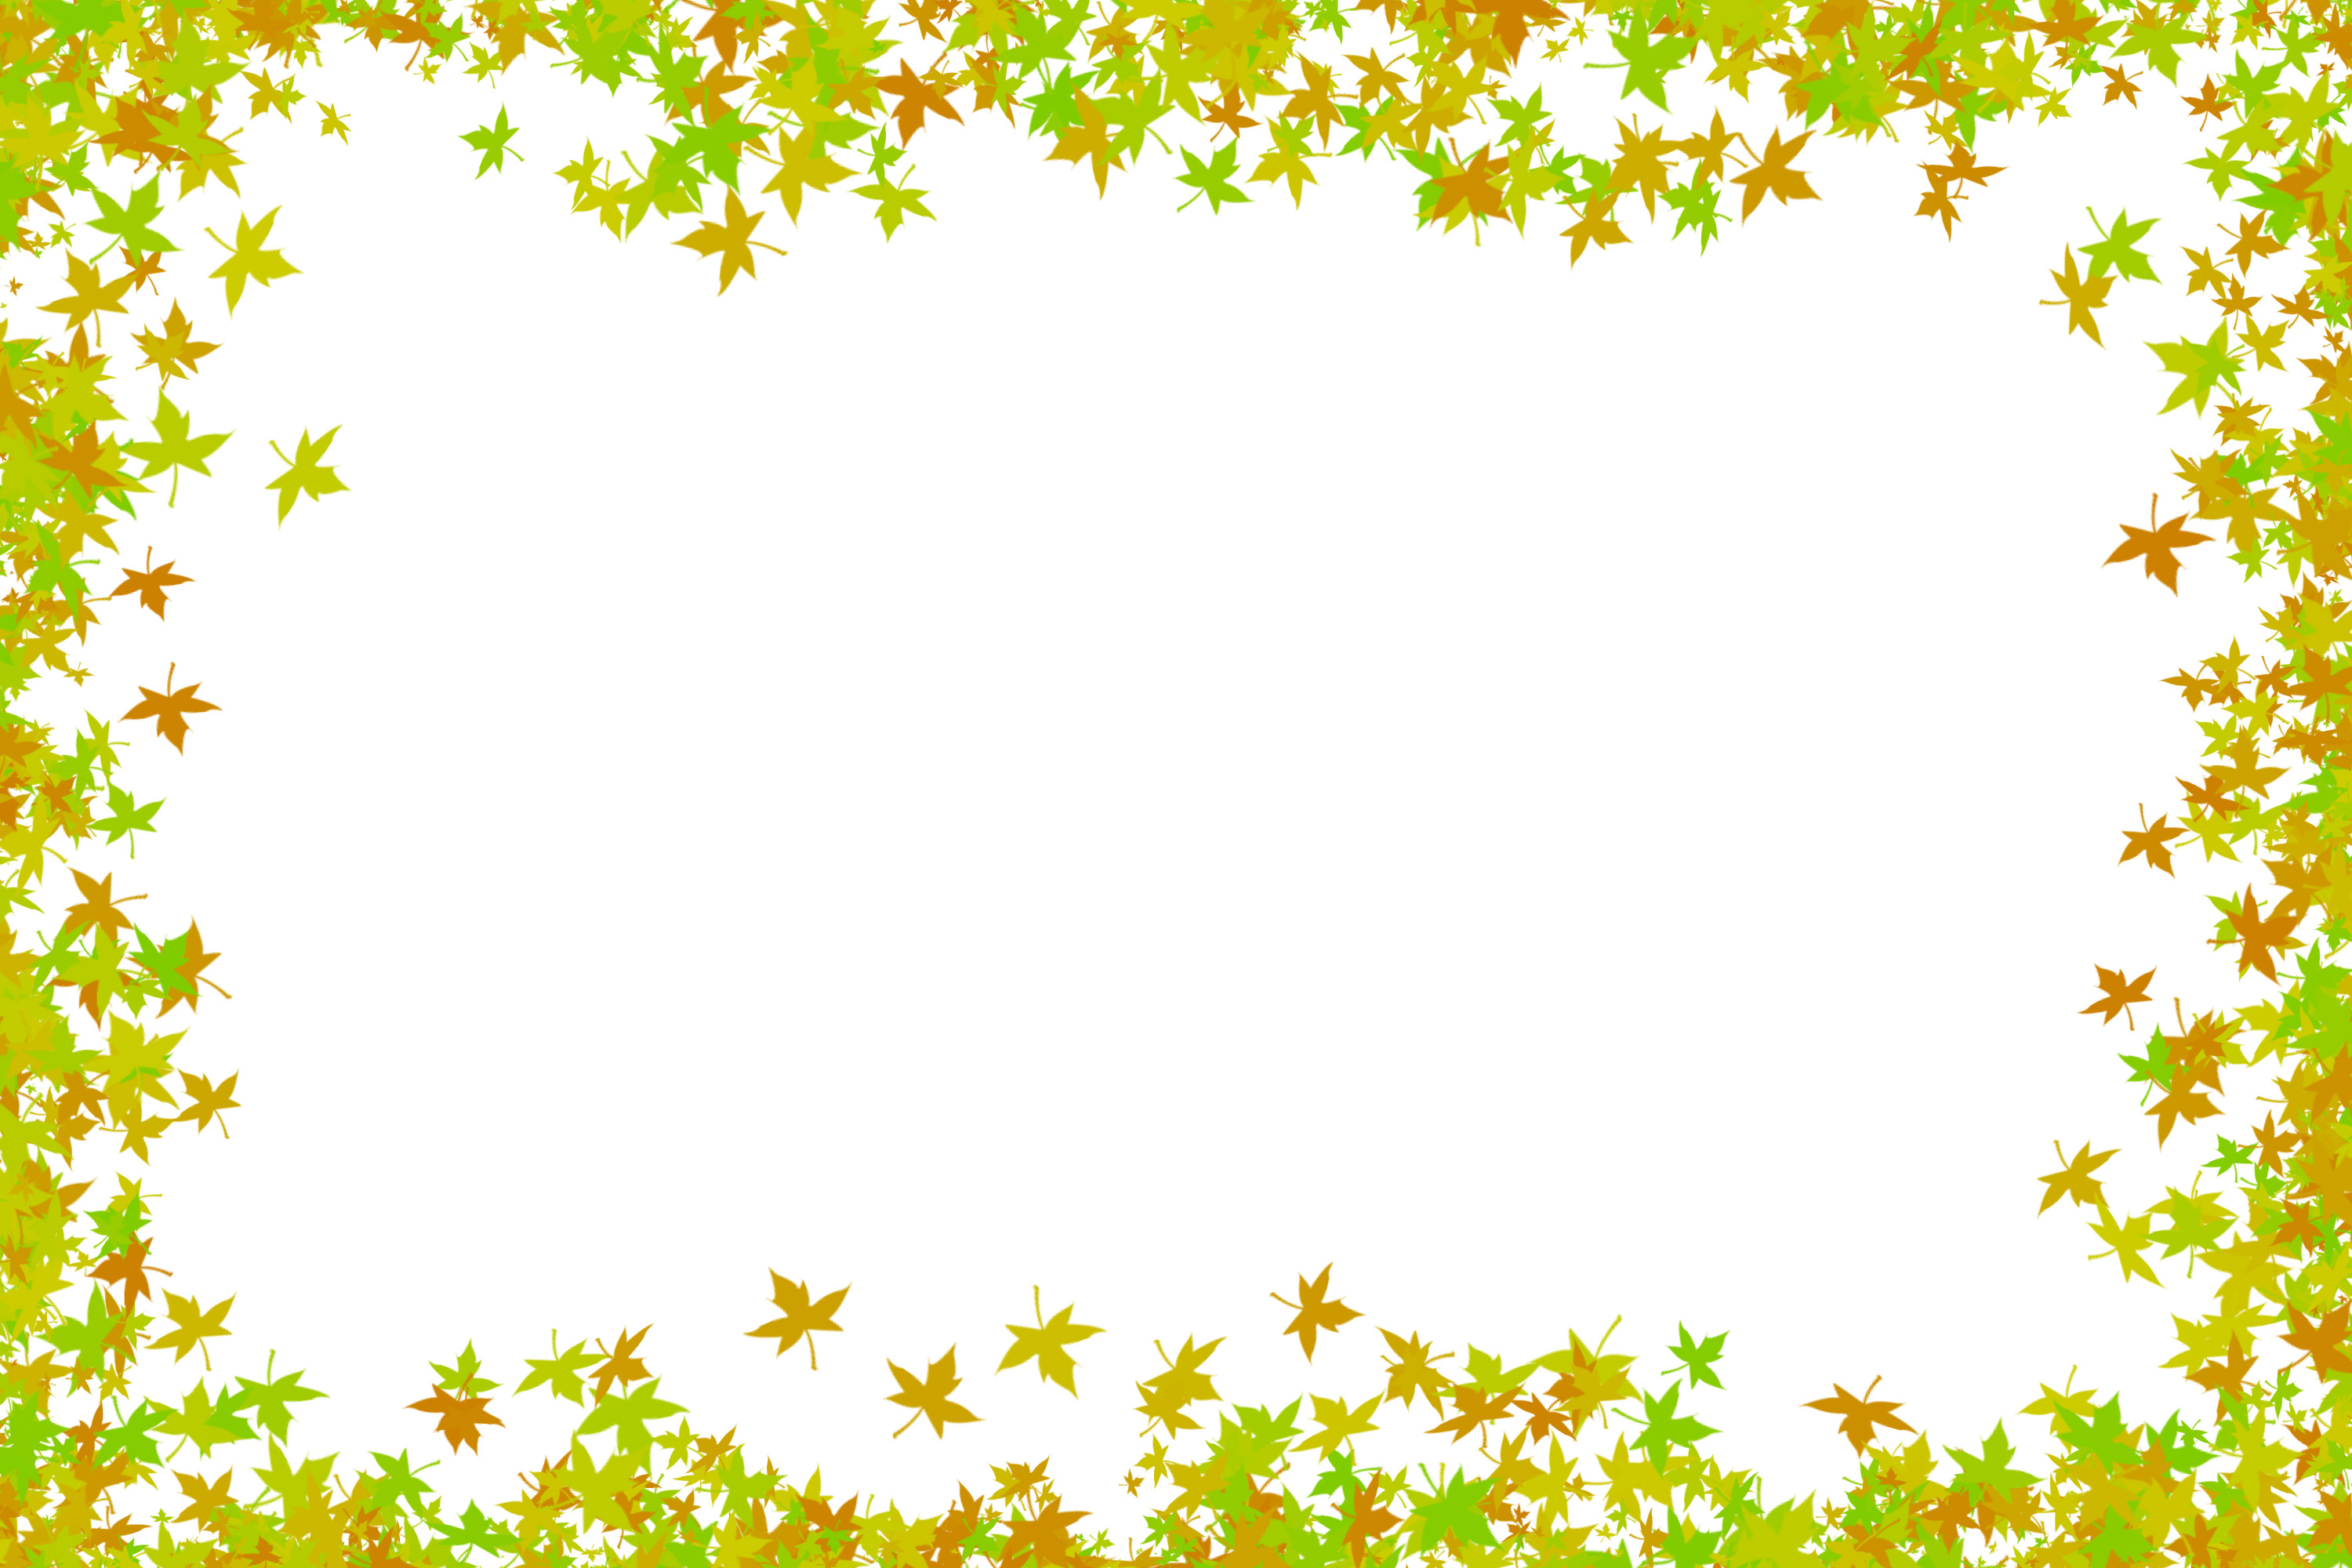 Templates as well Transparent Gold Frame Borders also Gold Star Border ...